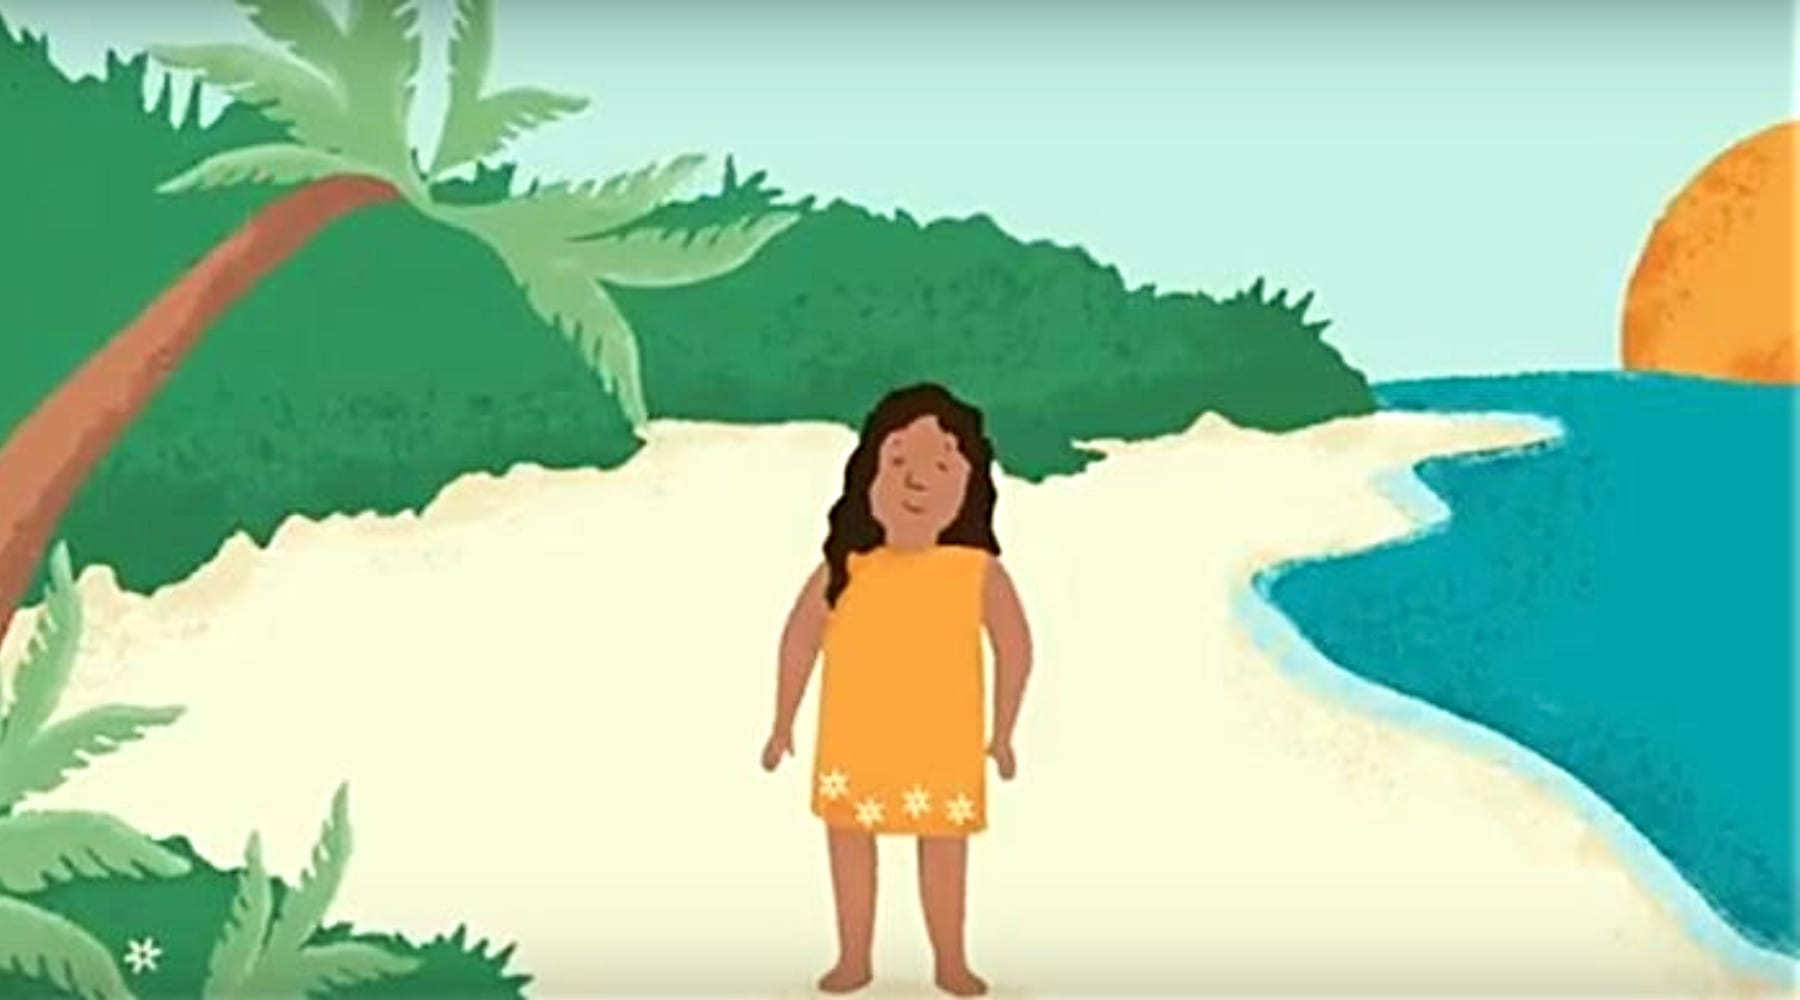 Free Animated Video Teaches About Impact of Climate Change